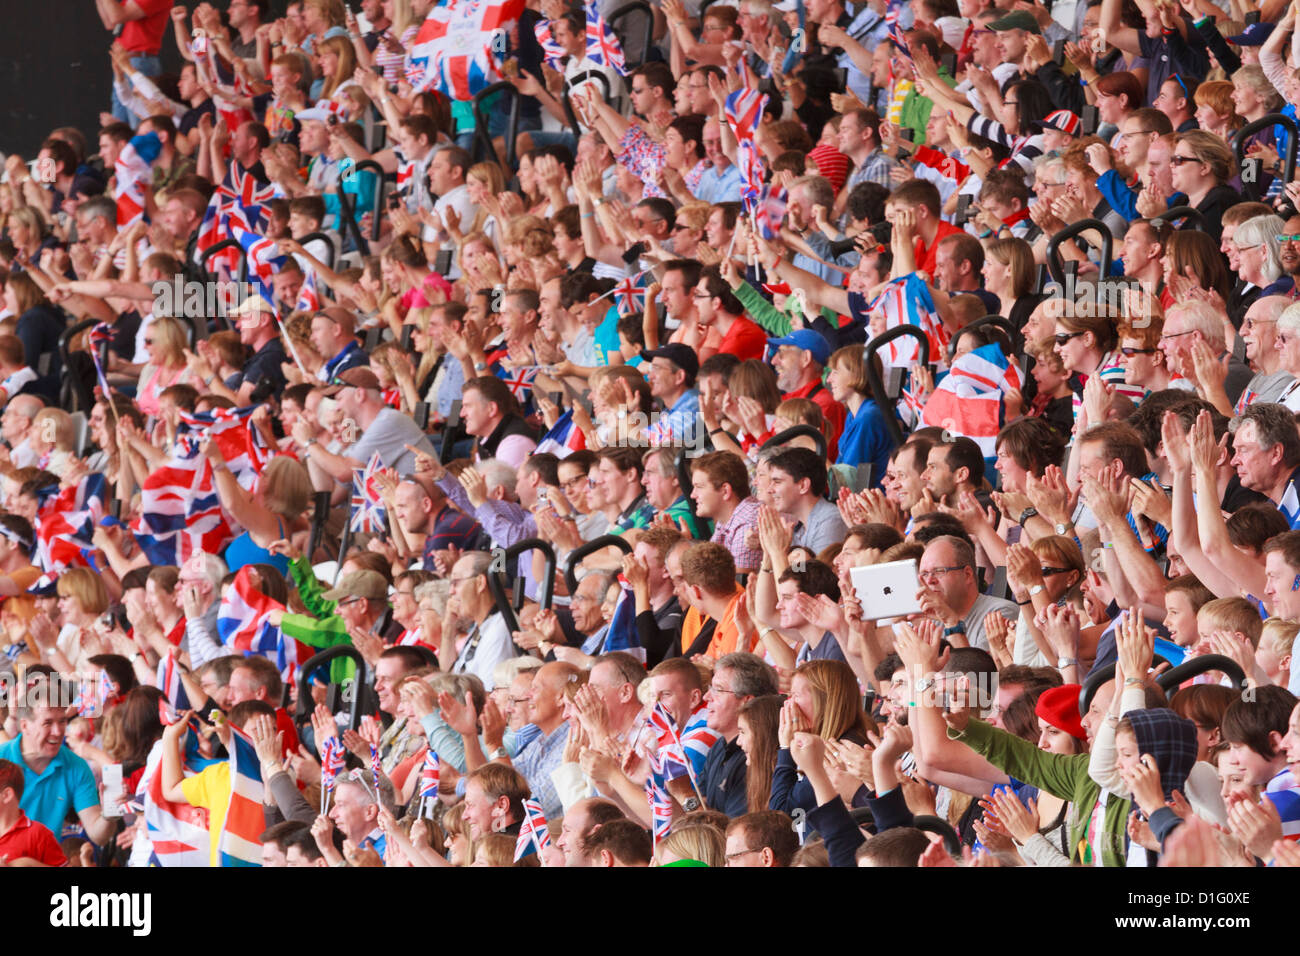 Large crowd of British spectators with Union flags in a sports arena, London, England, United Kingdom, Europe - Stock Image